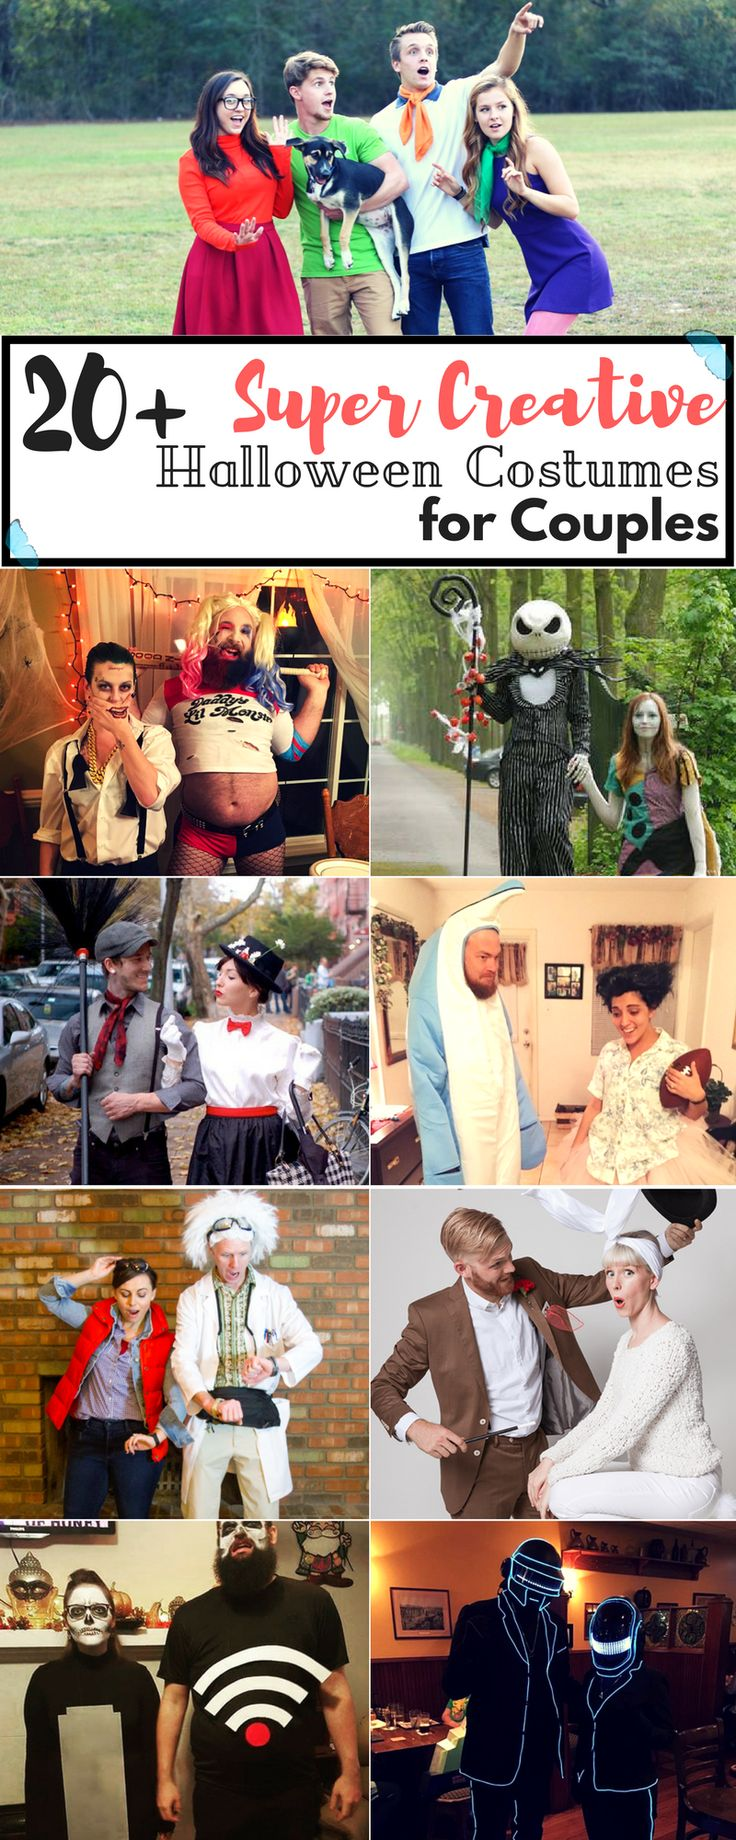 Happy Halloween lovely dreamers! As you can see, we're crazy in love with Halloween, so today we've got for you another 20+ list, Halloween edition! Today we're focusing on those couples that absolutely rocked the party with their super creative Halloween costumes for couples!